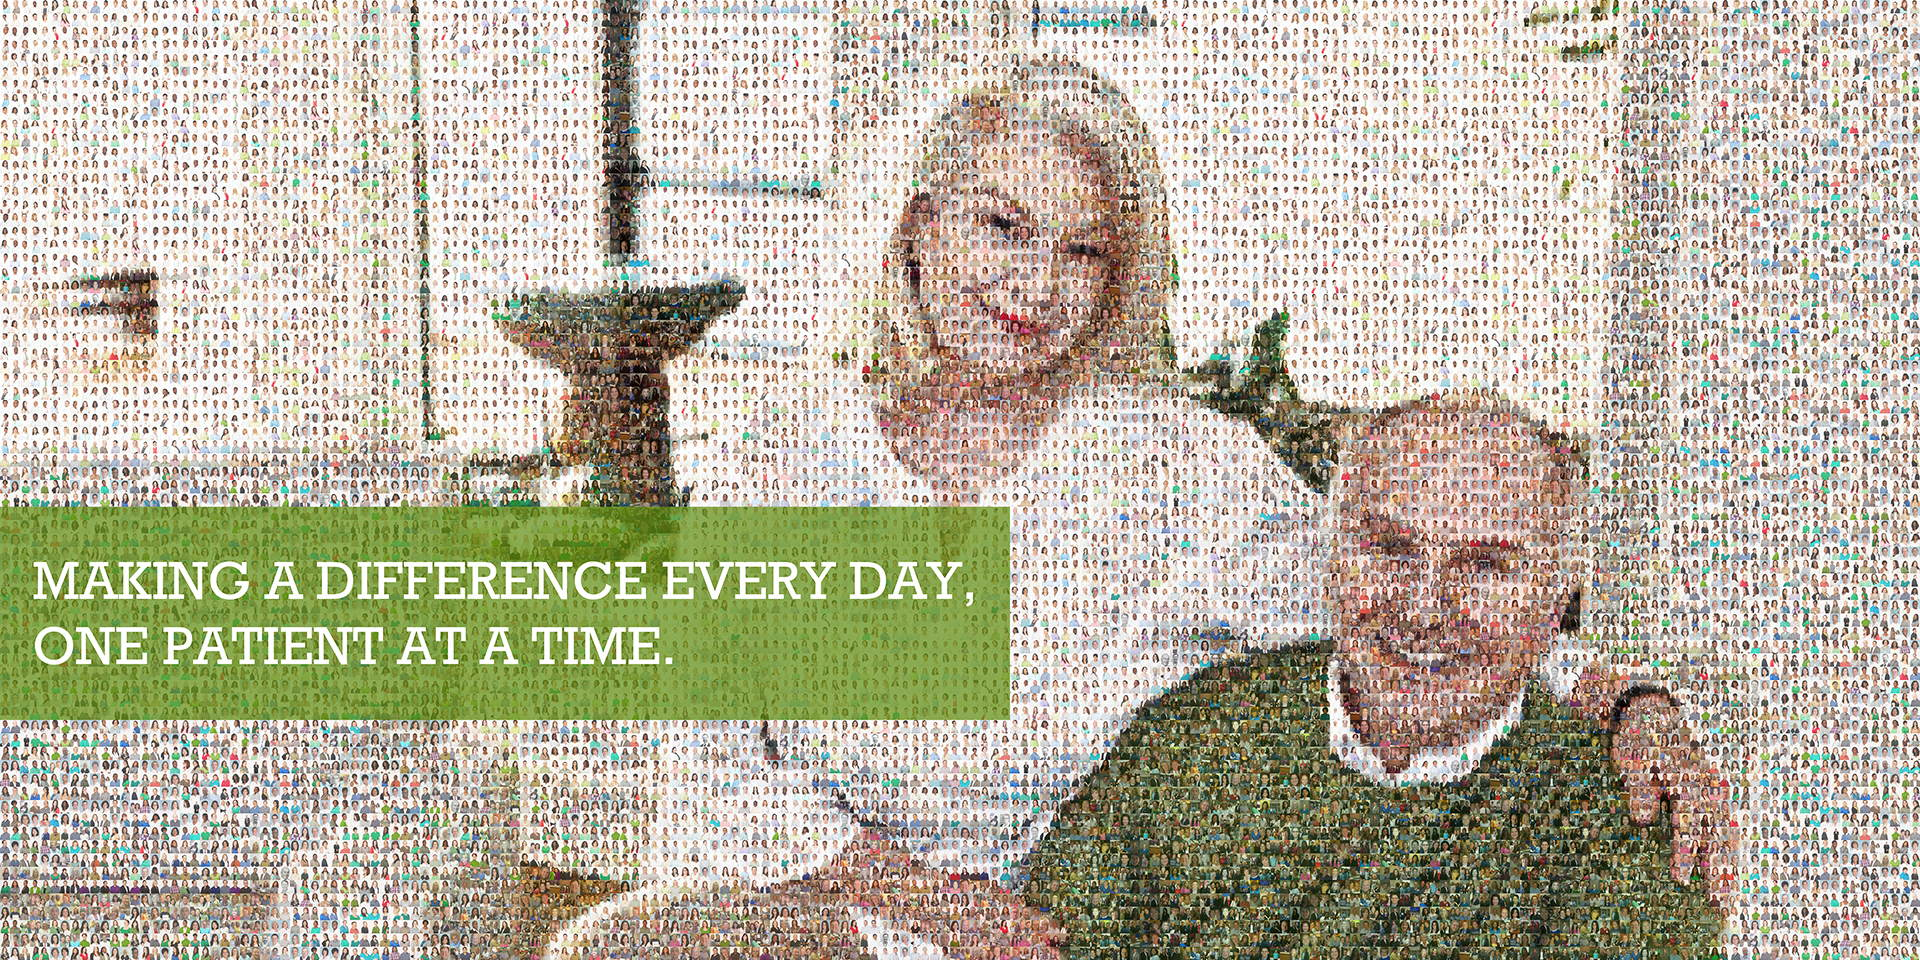 photo mosaic created using almost 1,500 company portraits